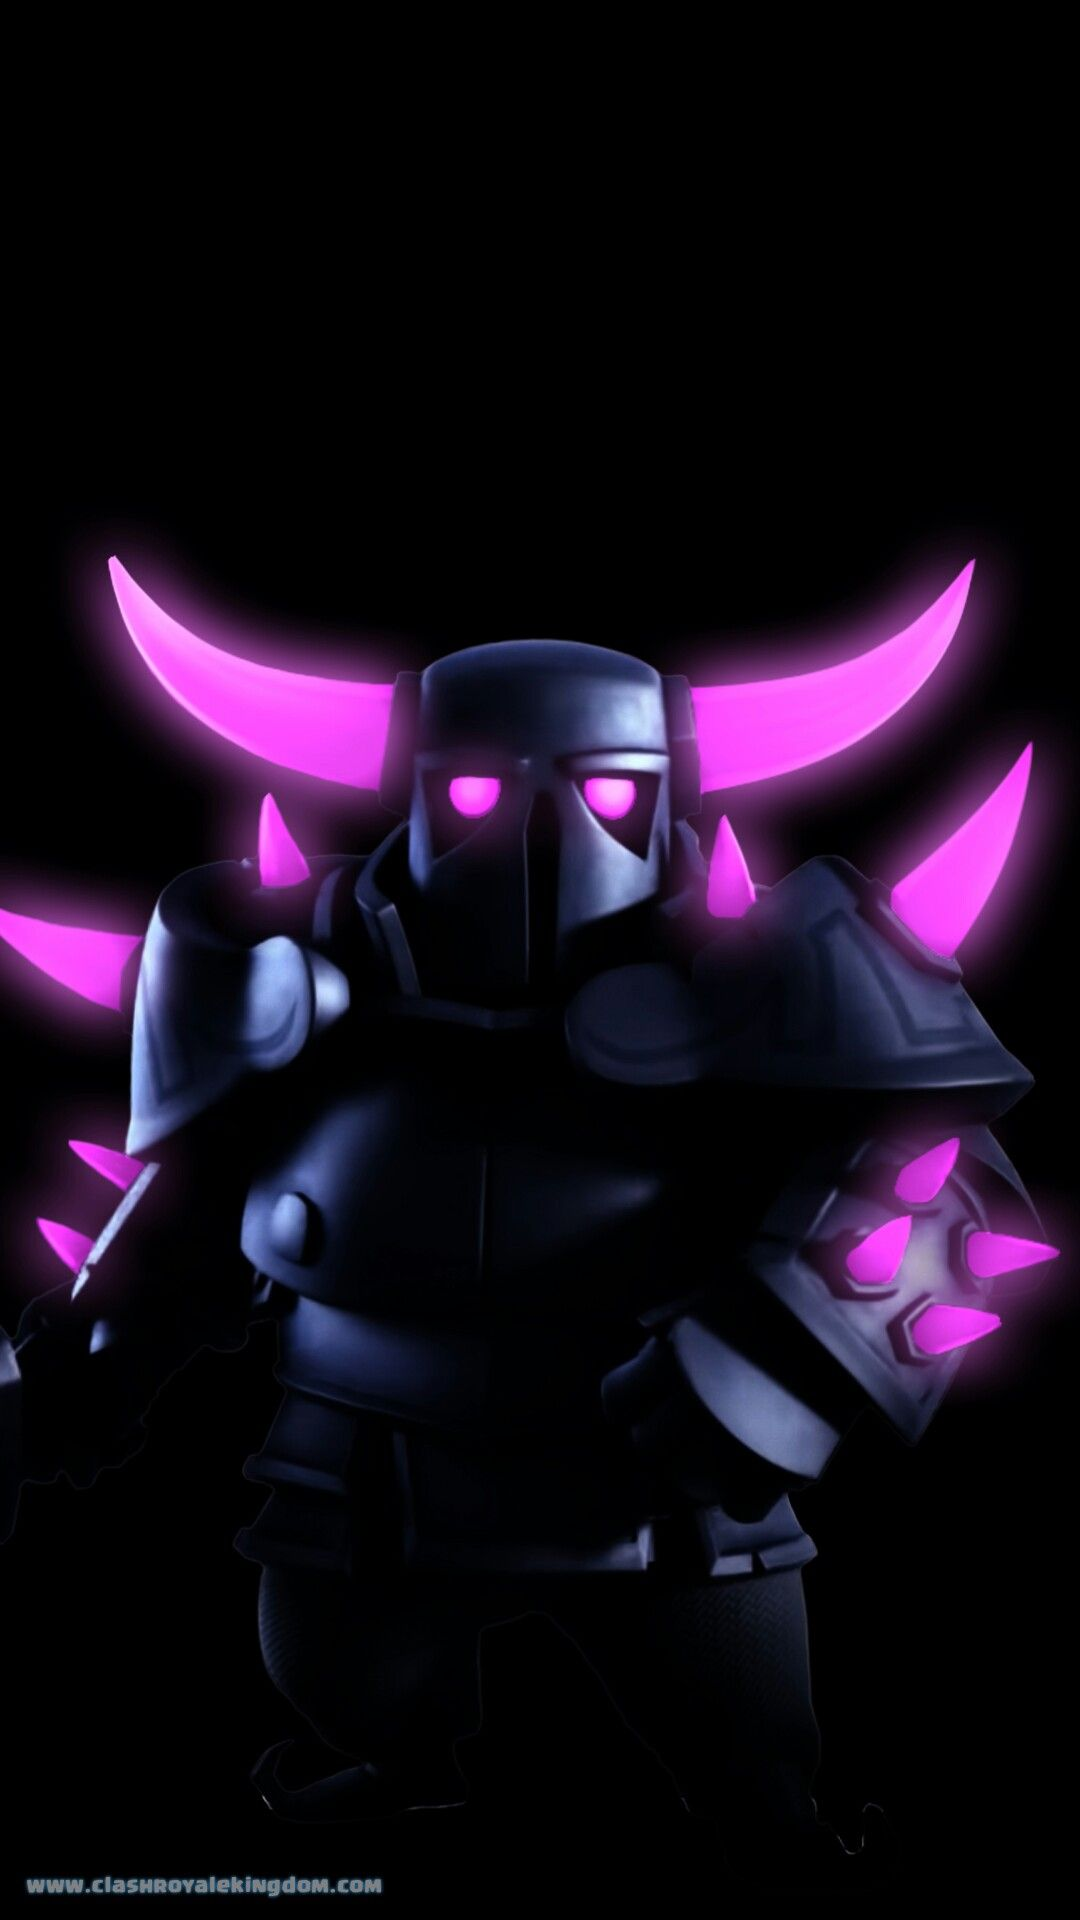 Pekka Appeared Supercell Hd Wallpaper Clash Royale Clash Of